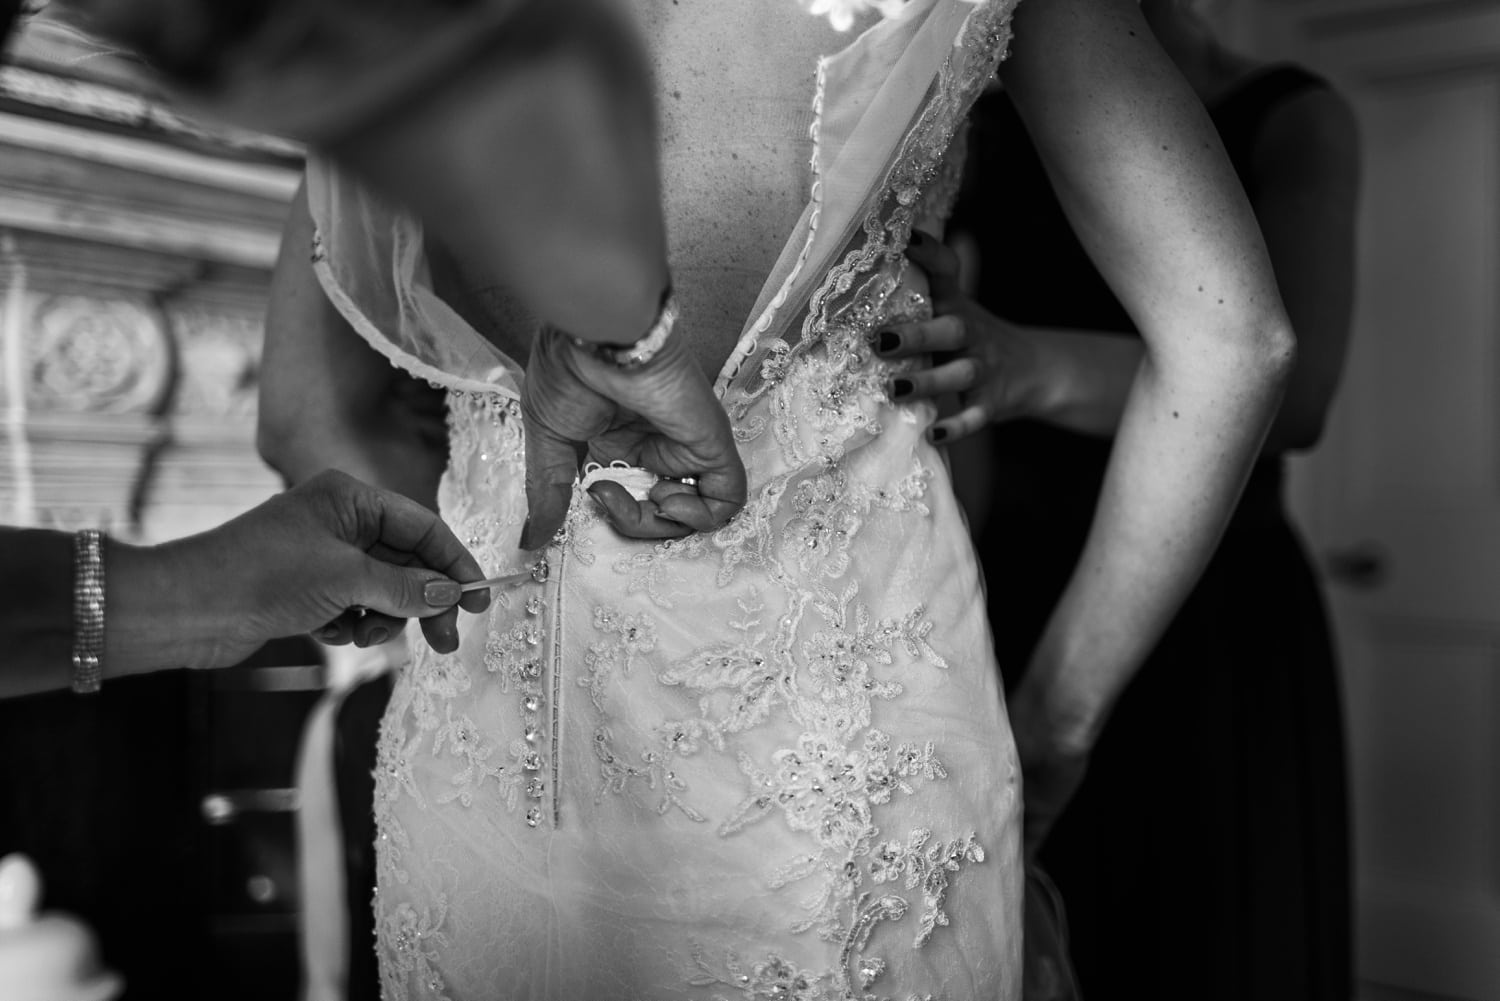 Wedding dress being buttoned at Clevedon Hall in Somerset